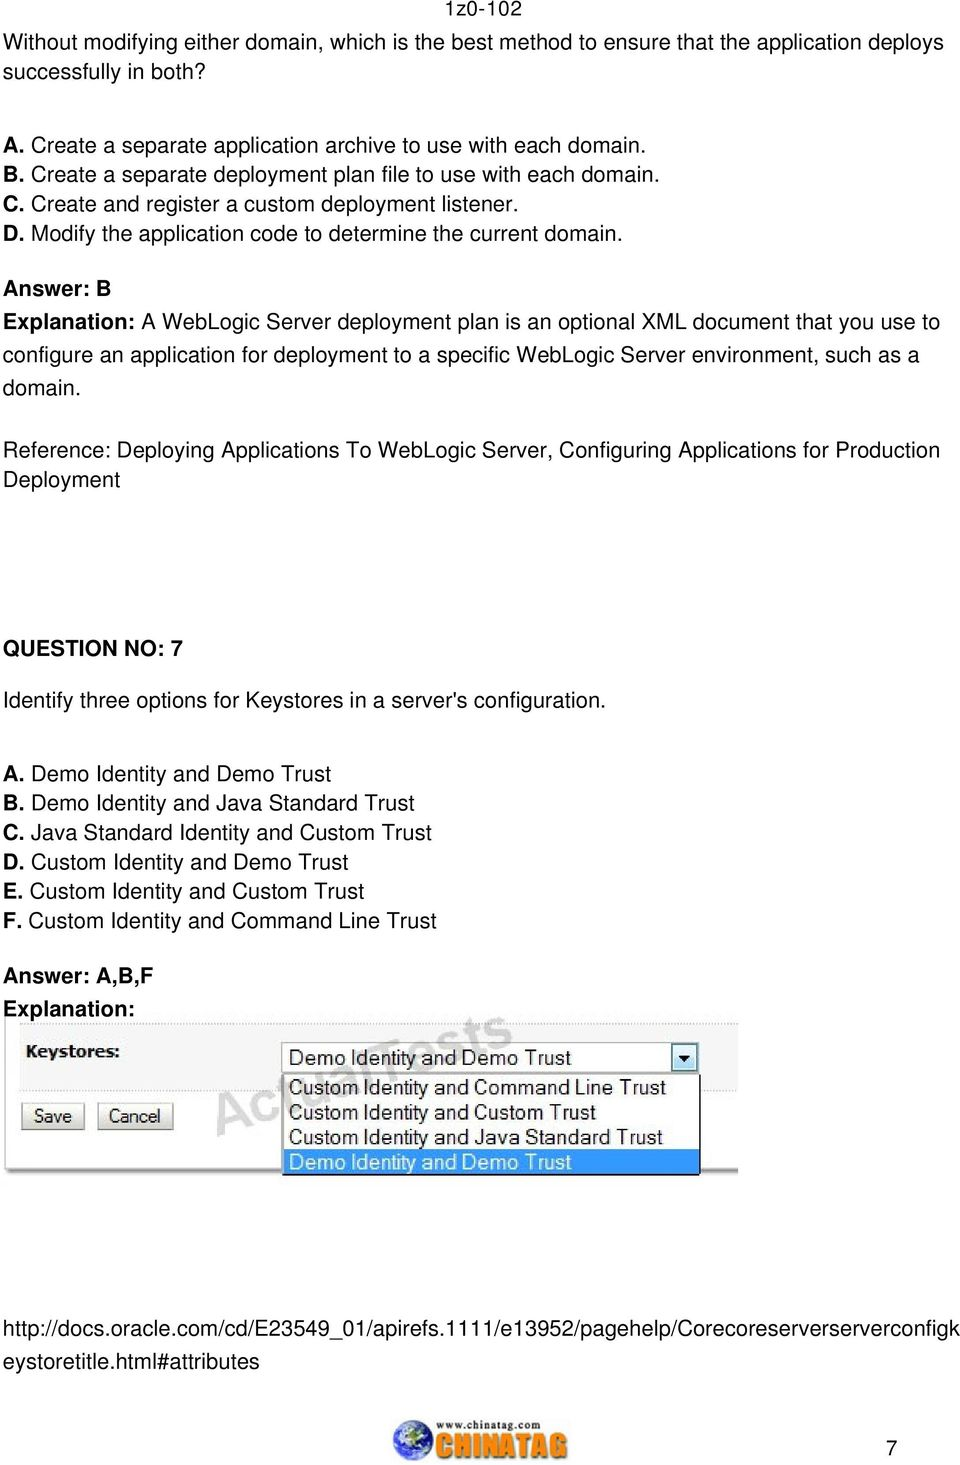 Answer: B Explanation: A WebLogic Server deployment plan is an optional XML document that you use to configure an application for deployment to a specific WebLogic Server environment, such as a